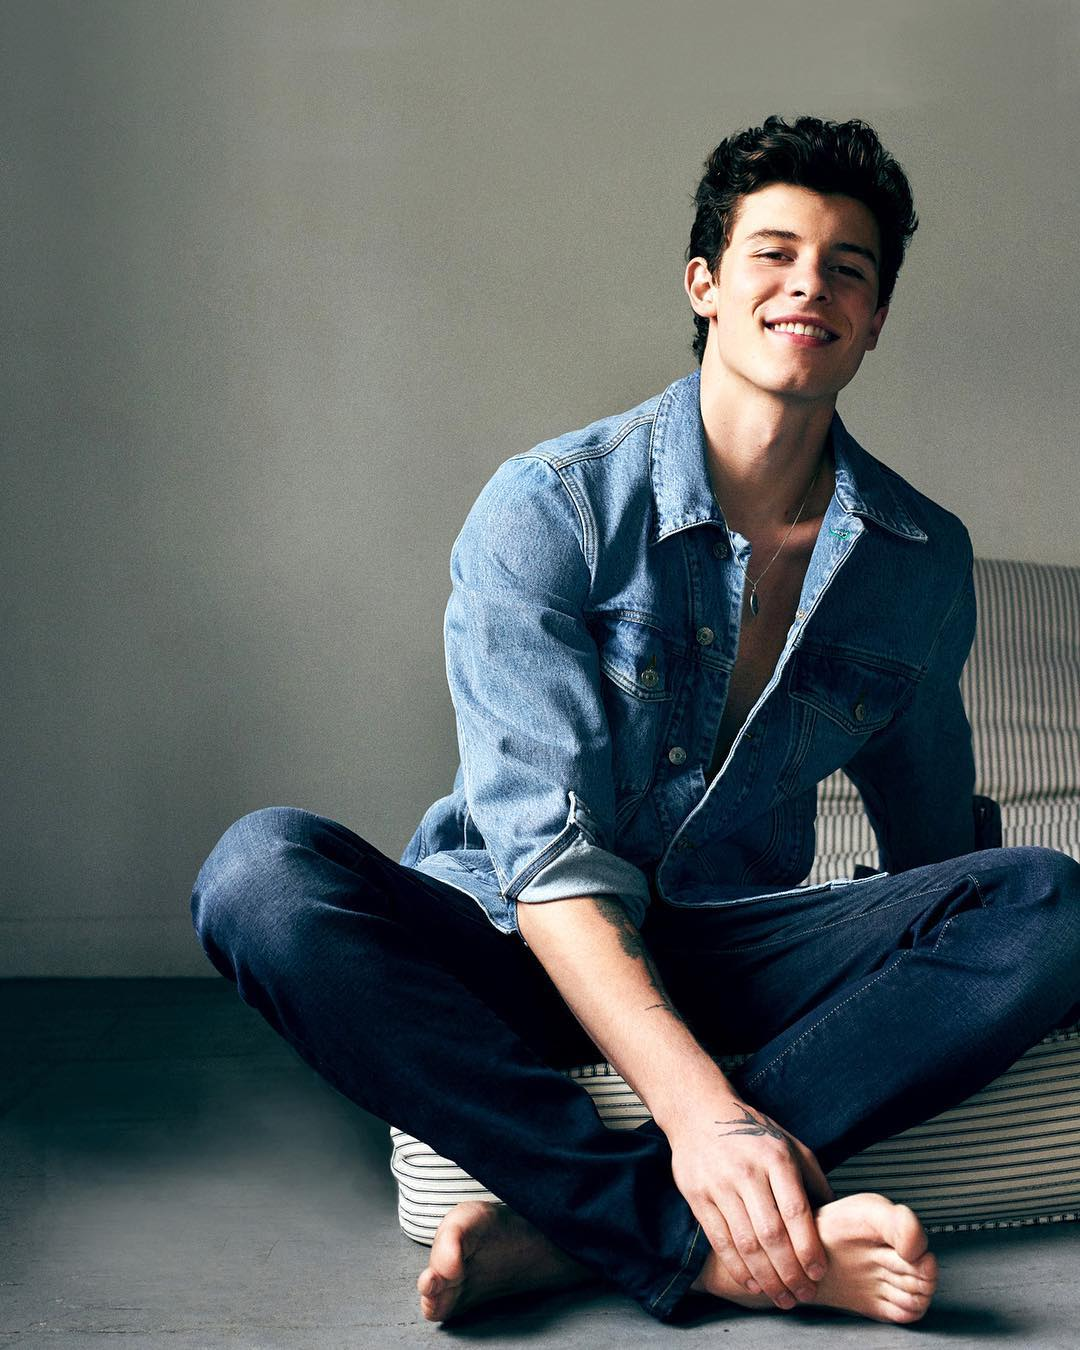 26 Shawn Mendes Calvin Klein Wallpapers On Wallpapersafari